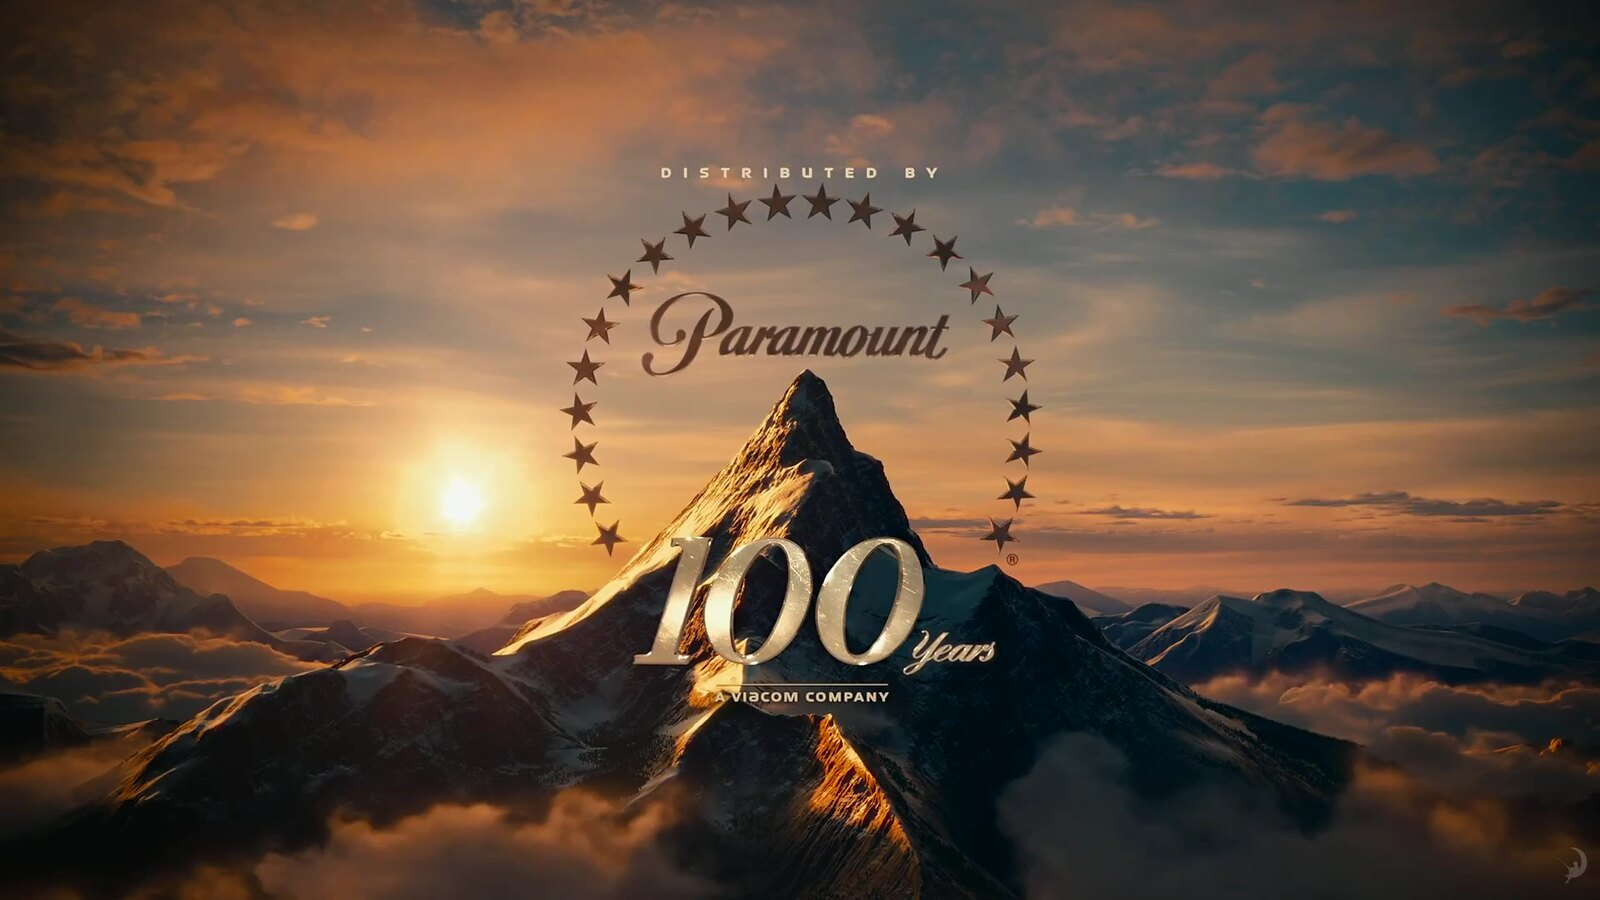 Paramount pictures movie posters